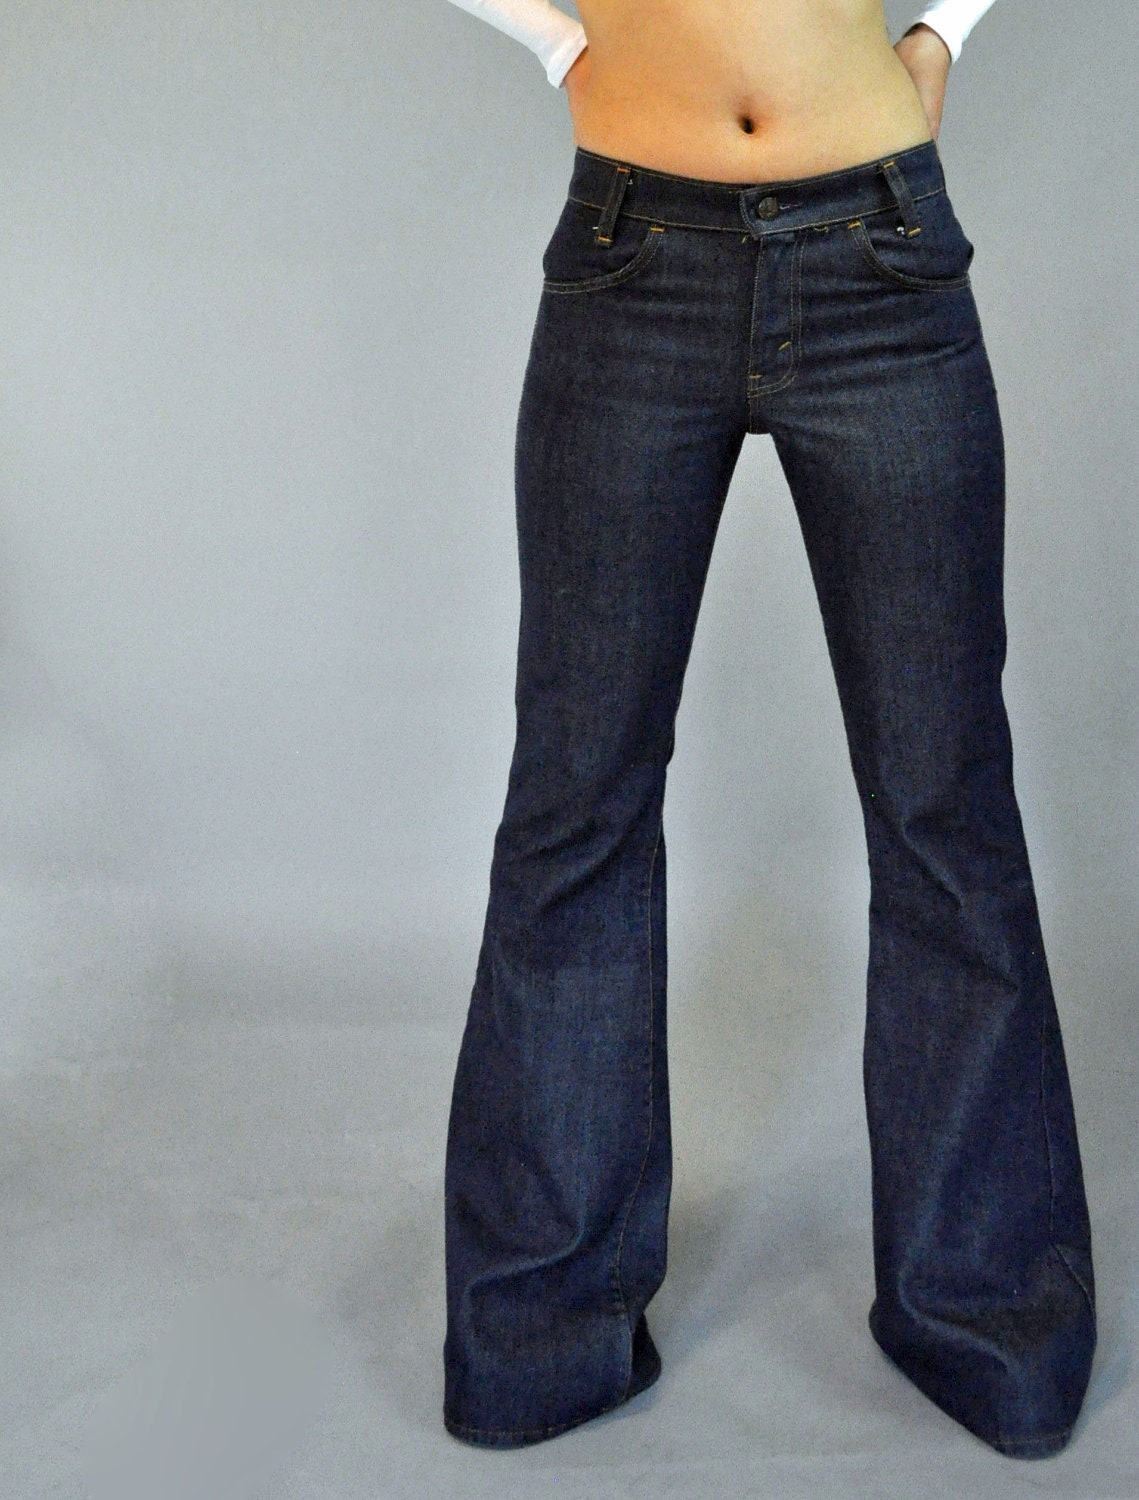 70s Vintage Levis Bell Bottom Jeans Hip By Rockstreetvintage